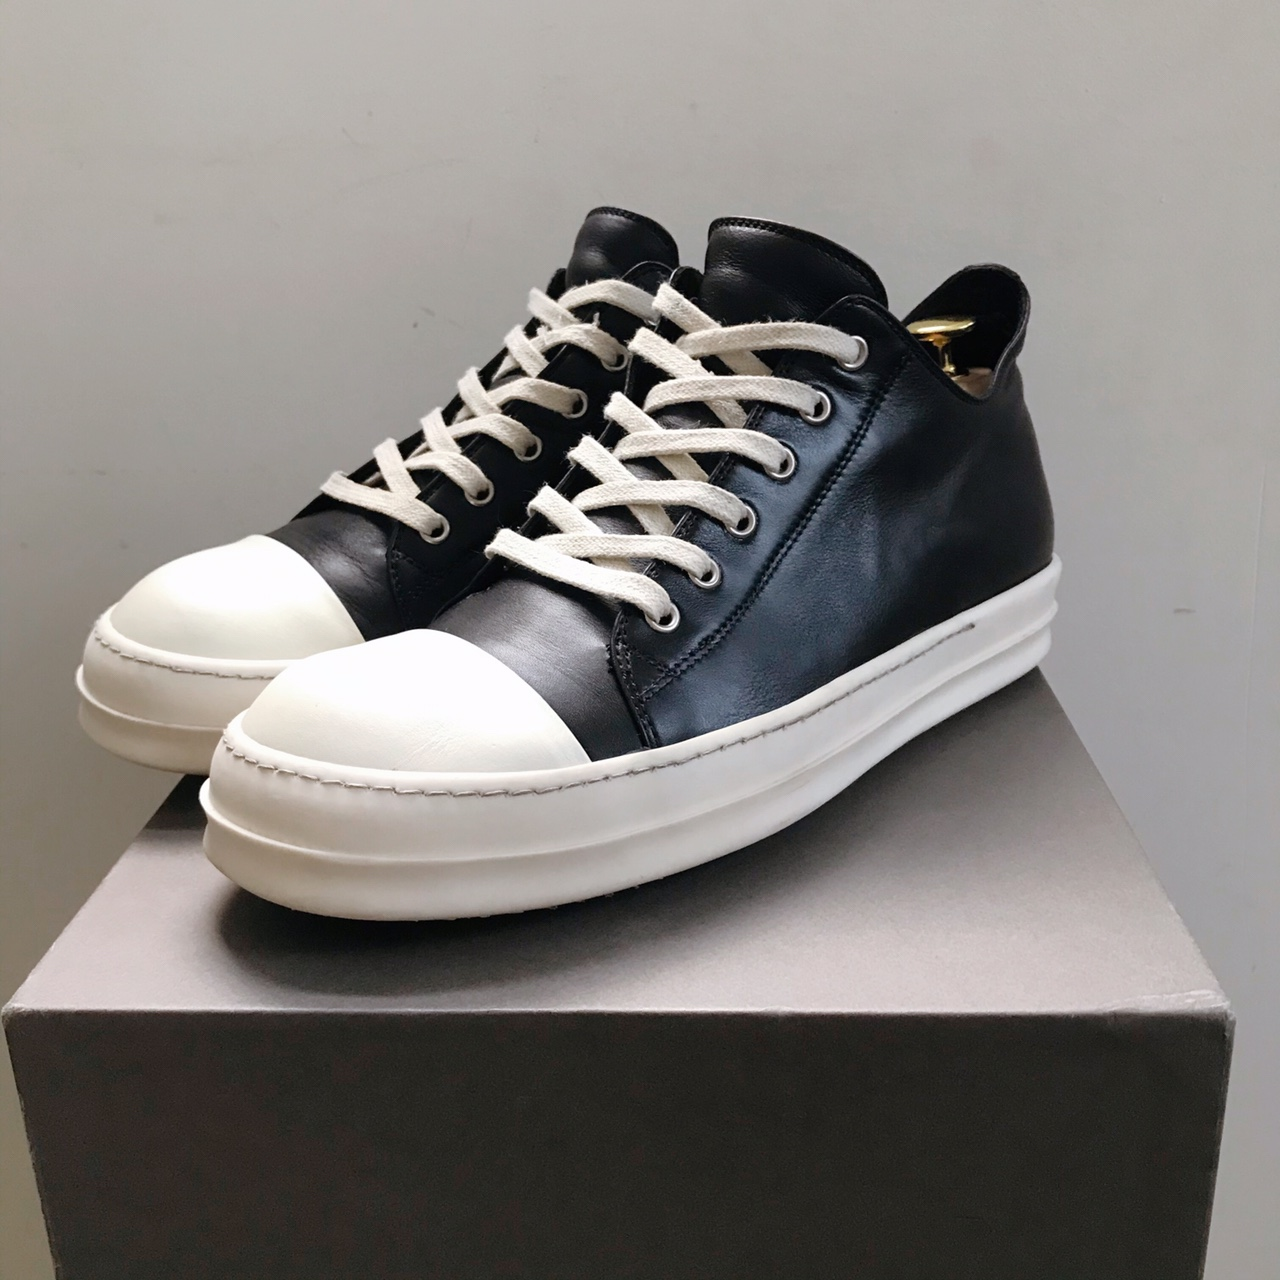 Rick Owens Mainline Ramones low from